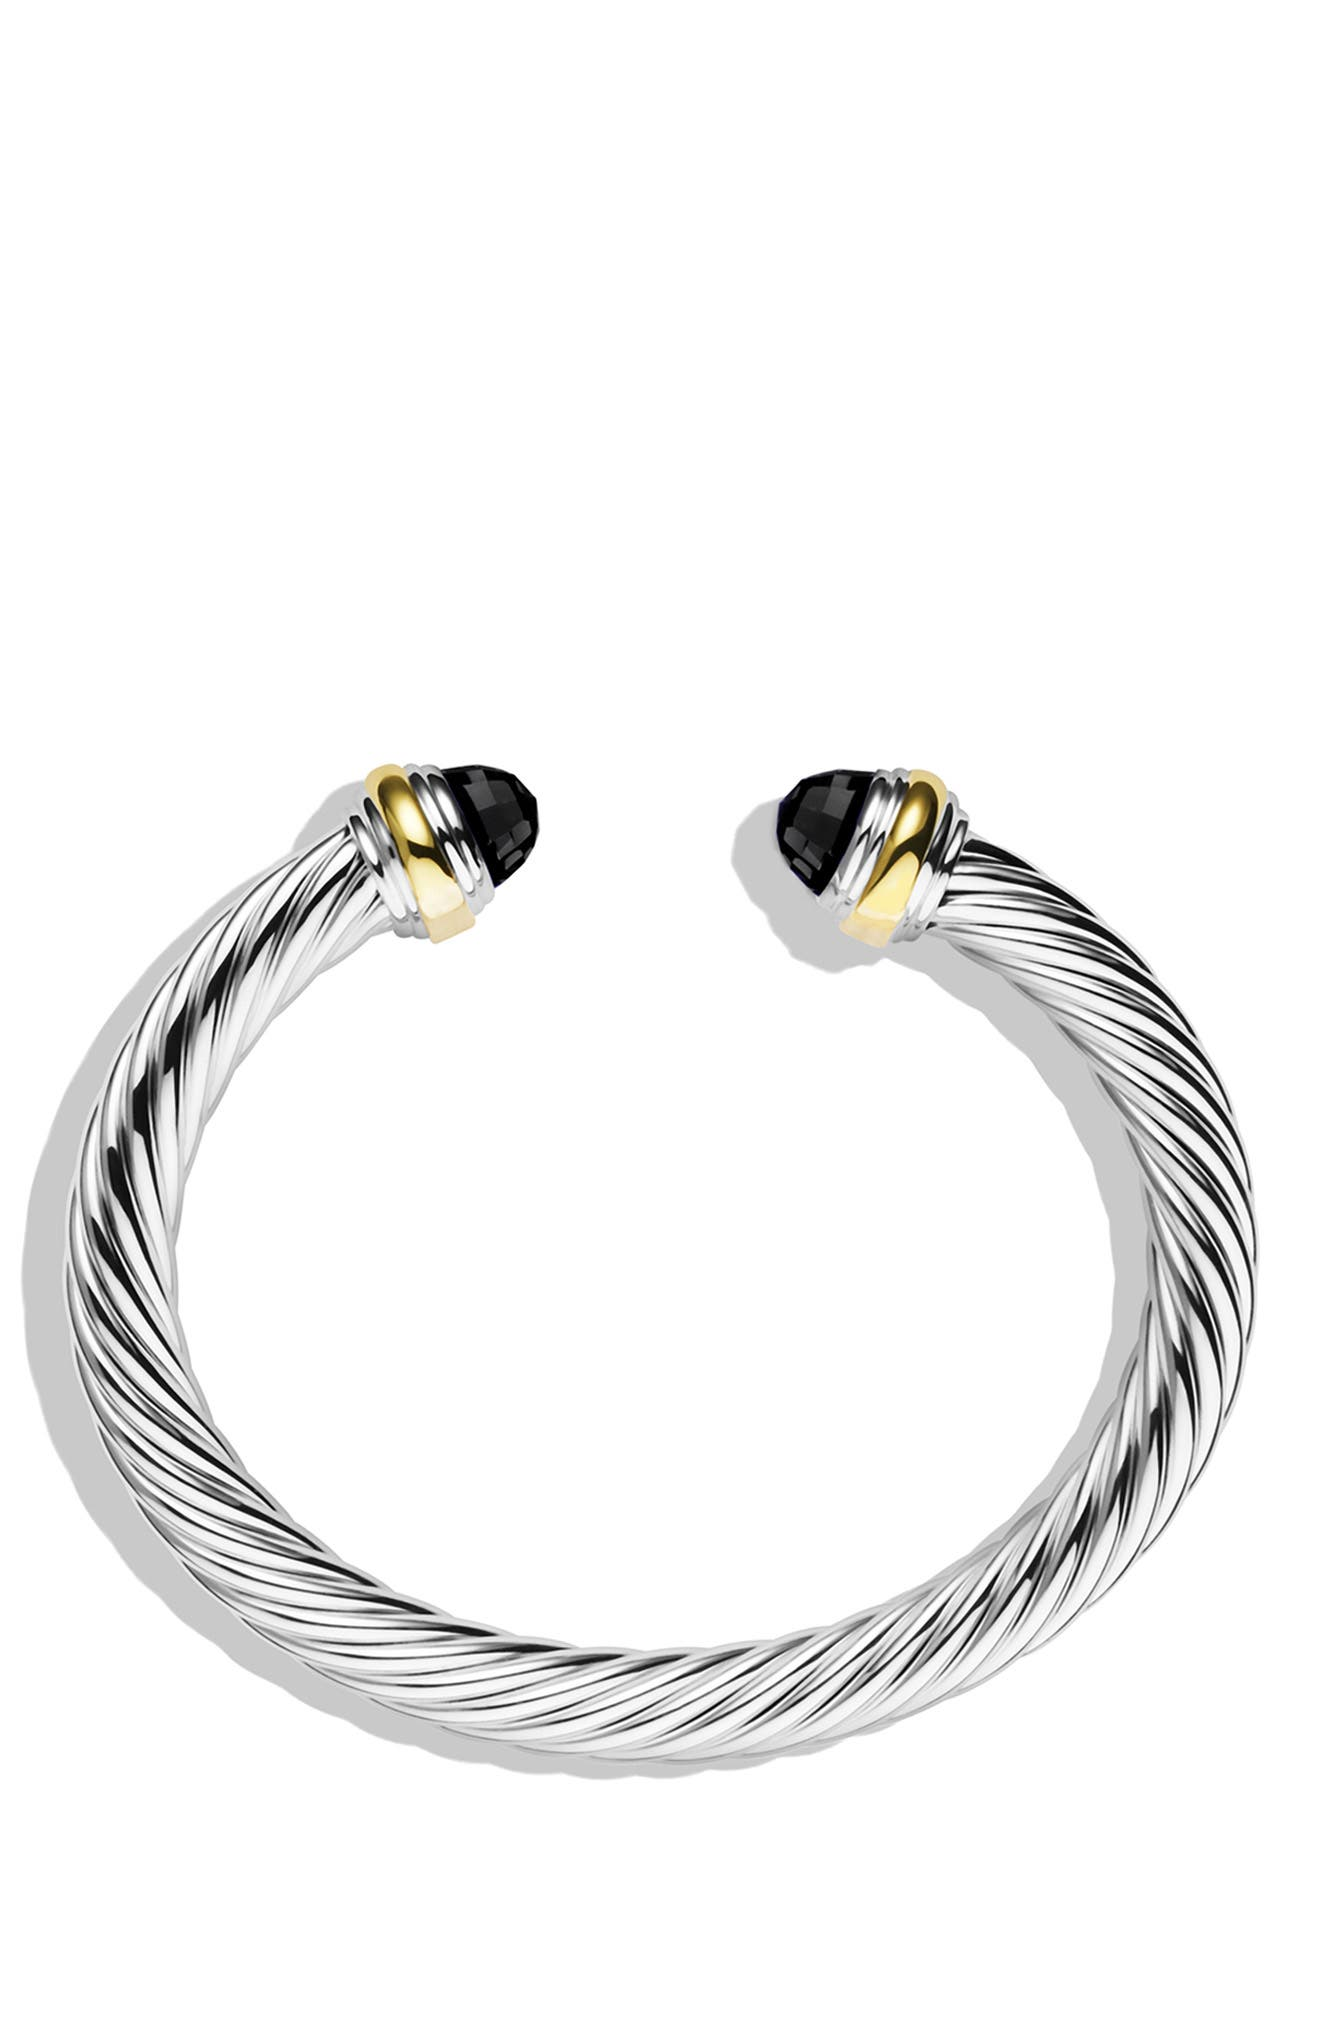 DAVID YURMAN, Cable Classics Bracelet with Semiprecious Stones & 14K Gold, 7mm, Alternate thumbnail 2, color, BLACK ONYX